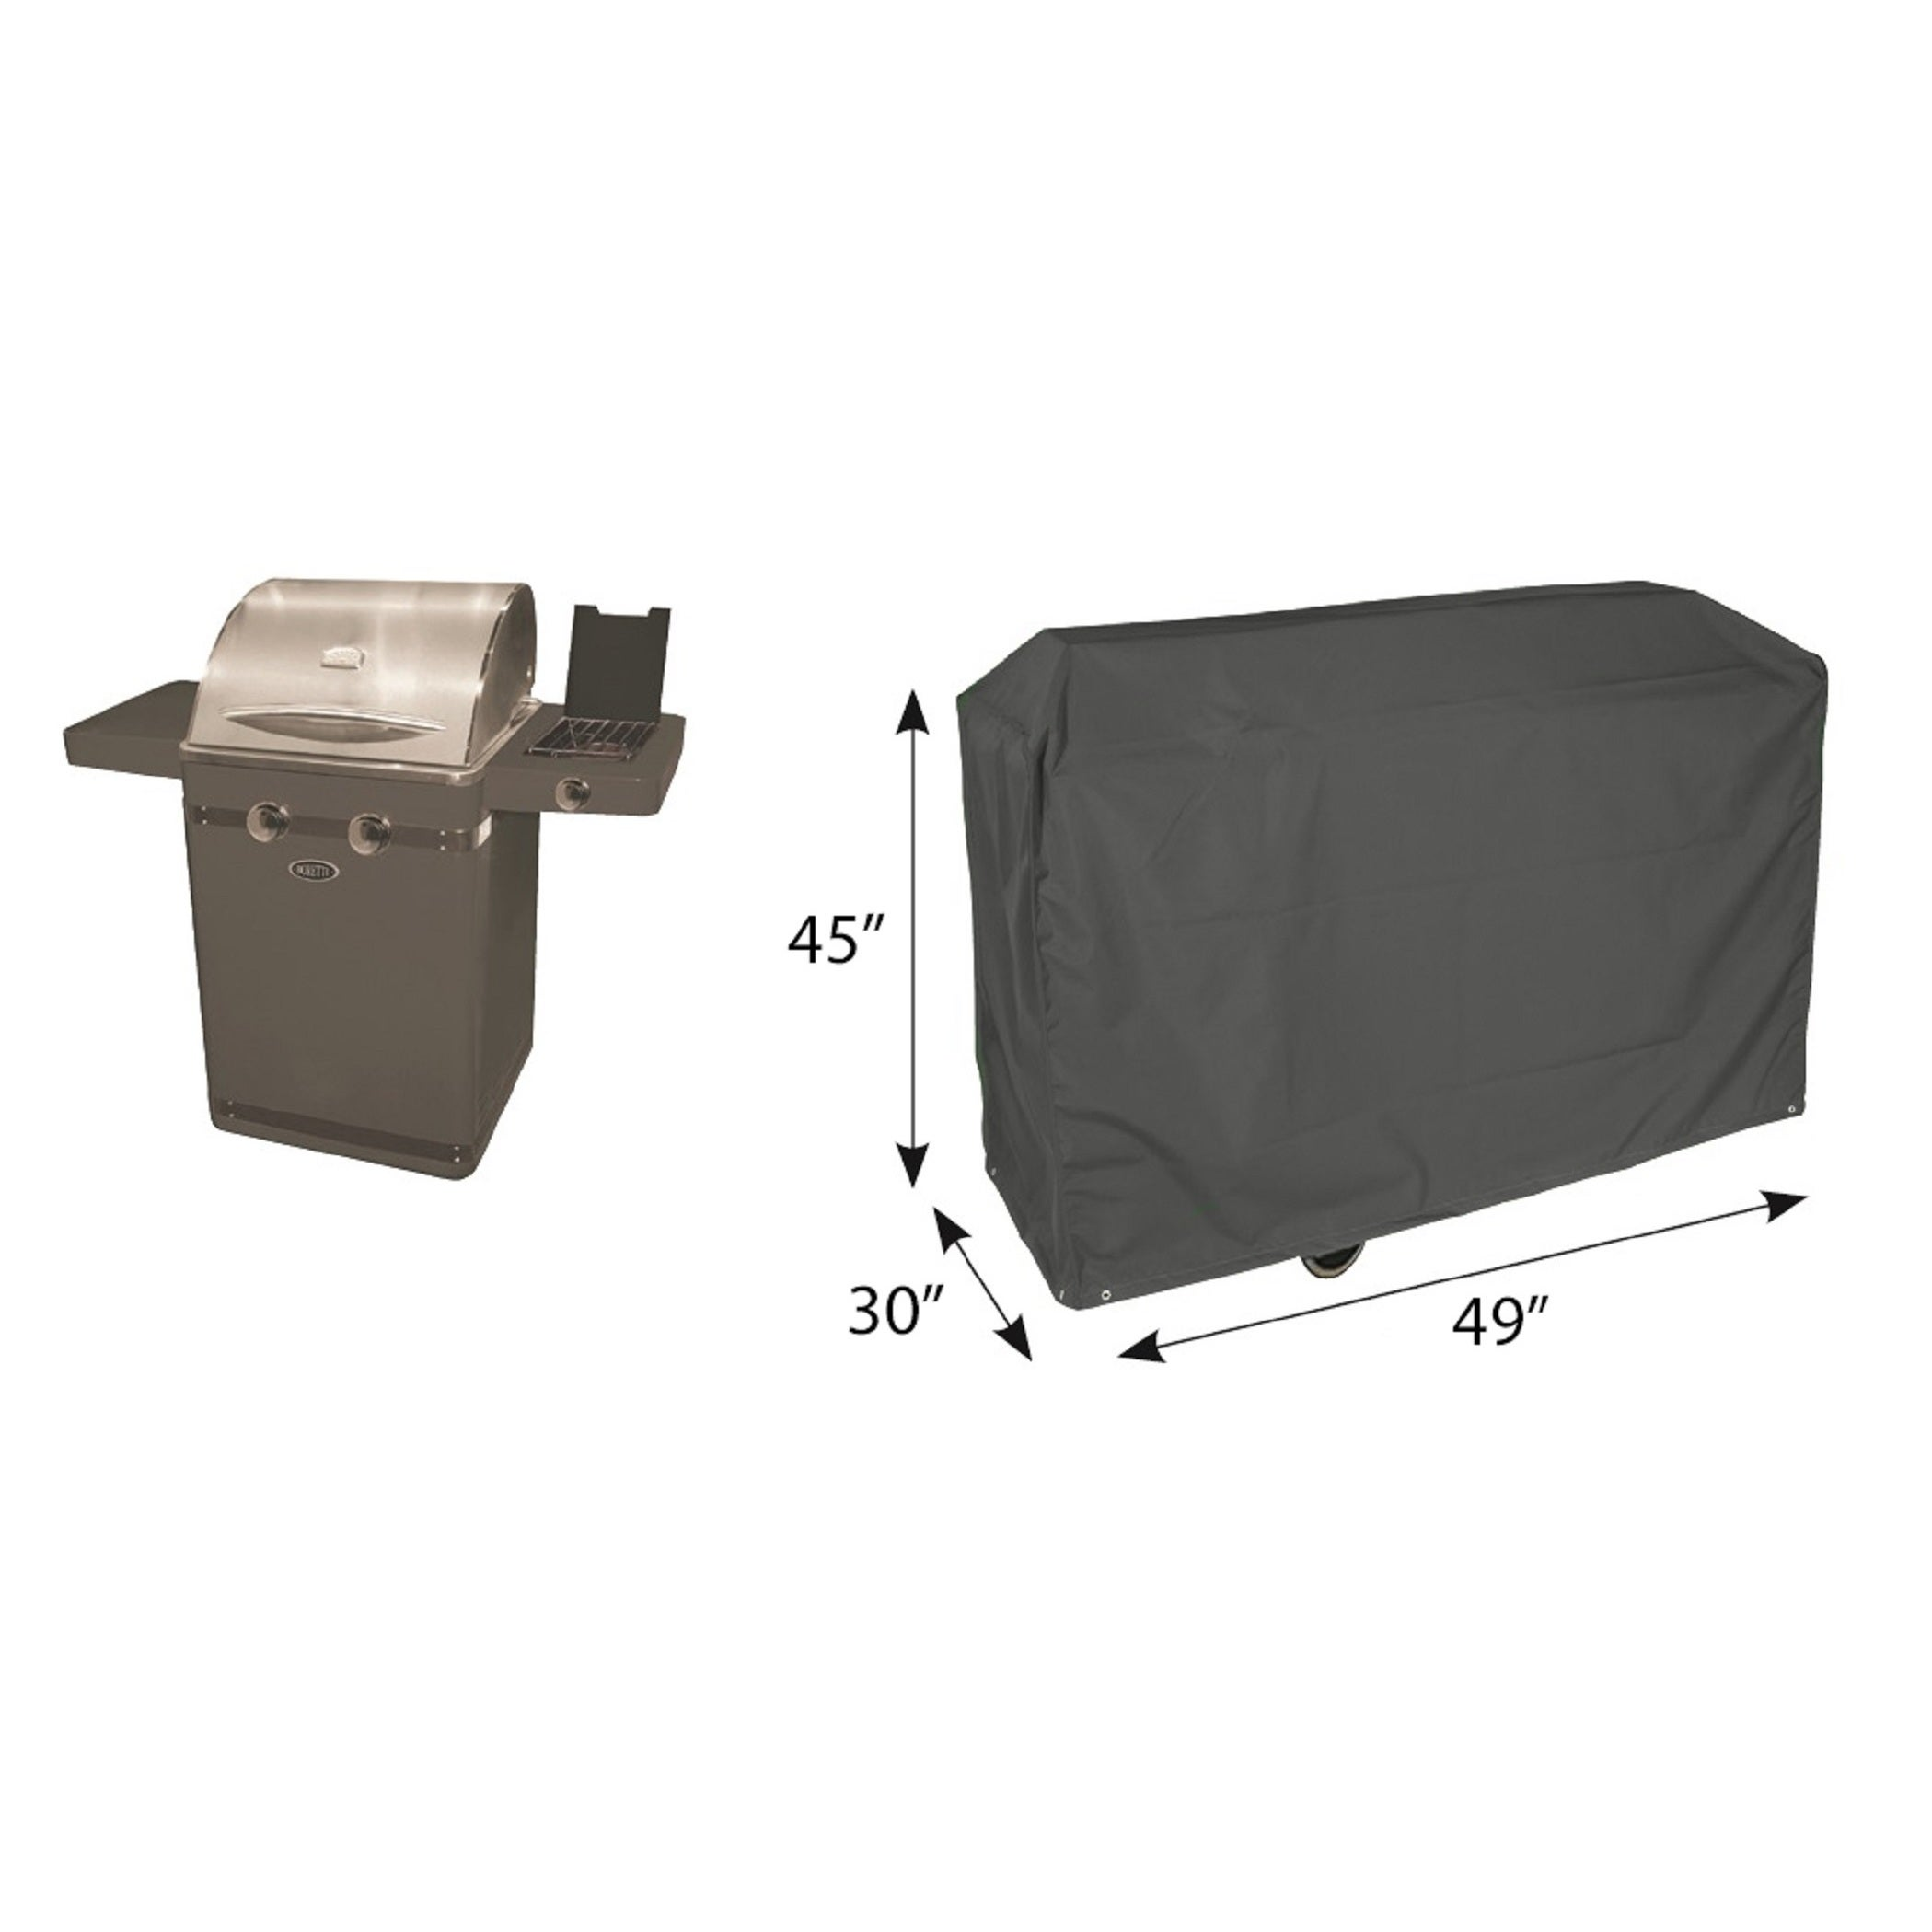 Shop Bosmere Deluxe Weatherproof Xl 49 Inch Bbq Grill Cover Free